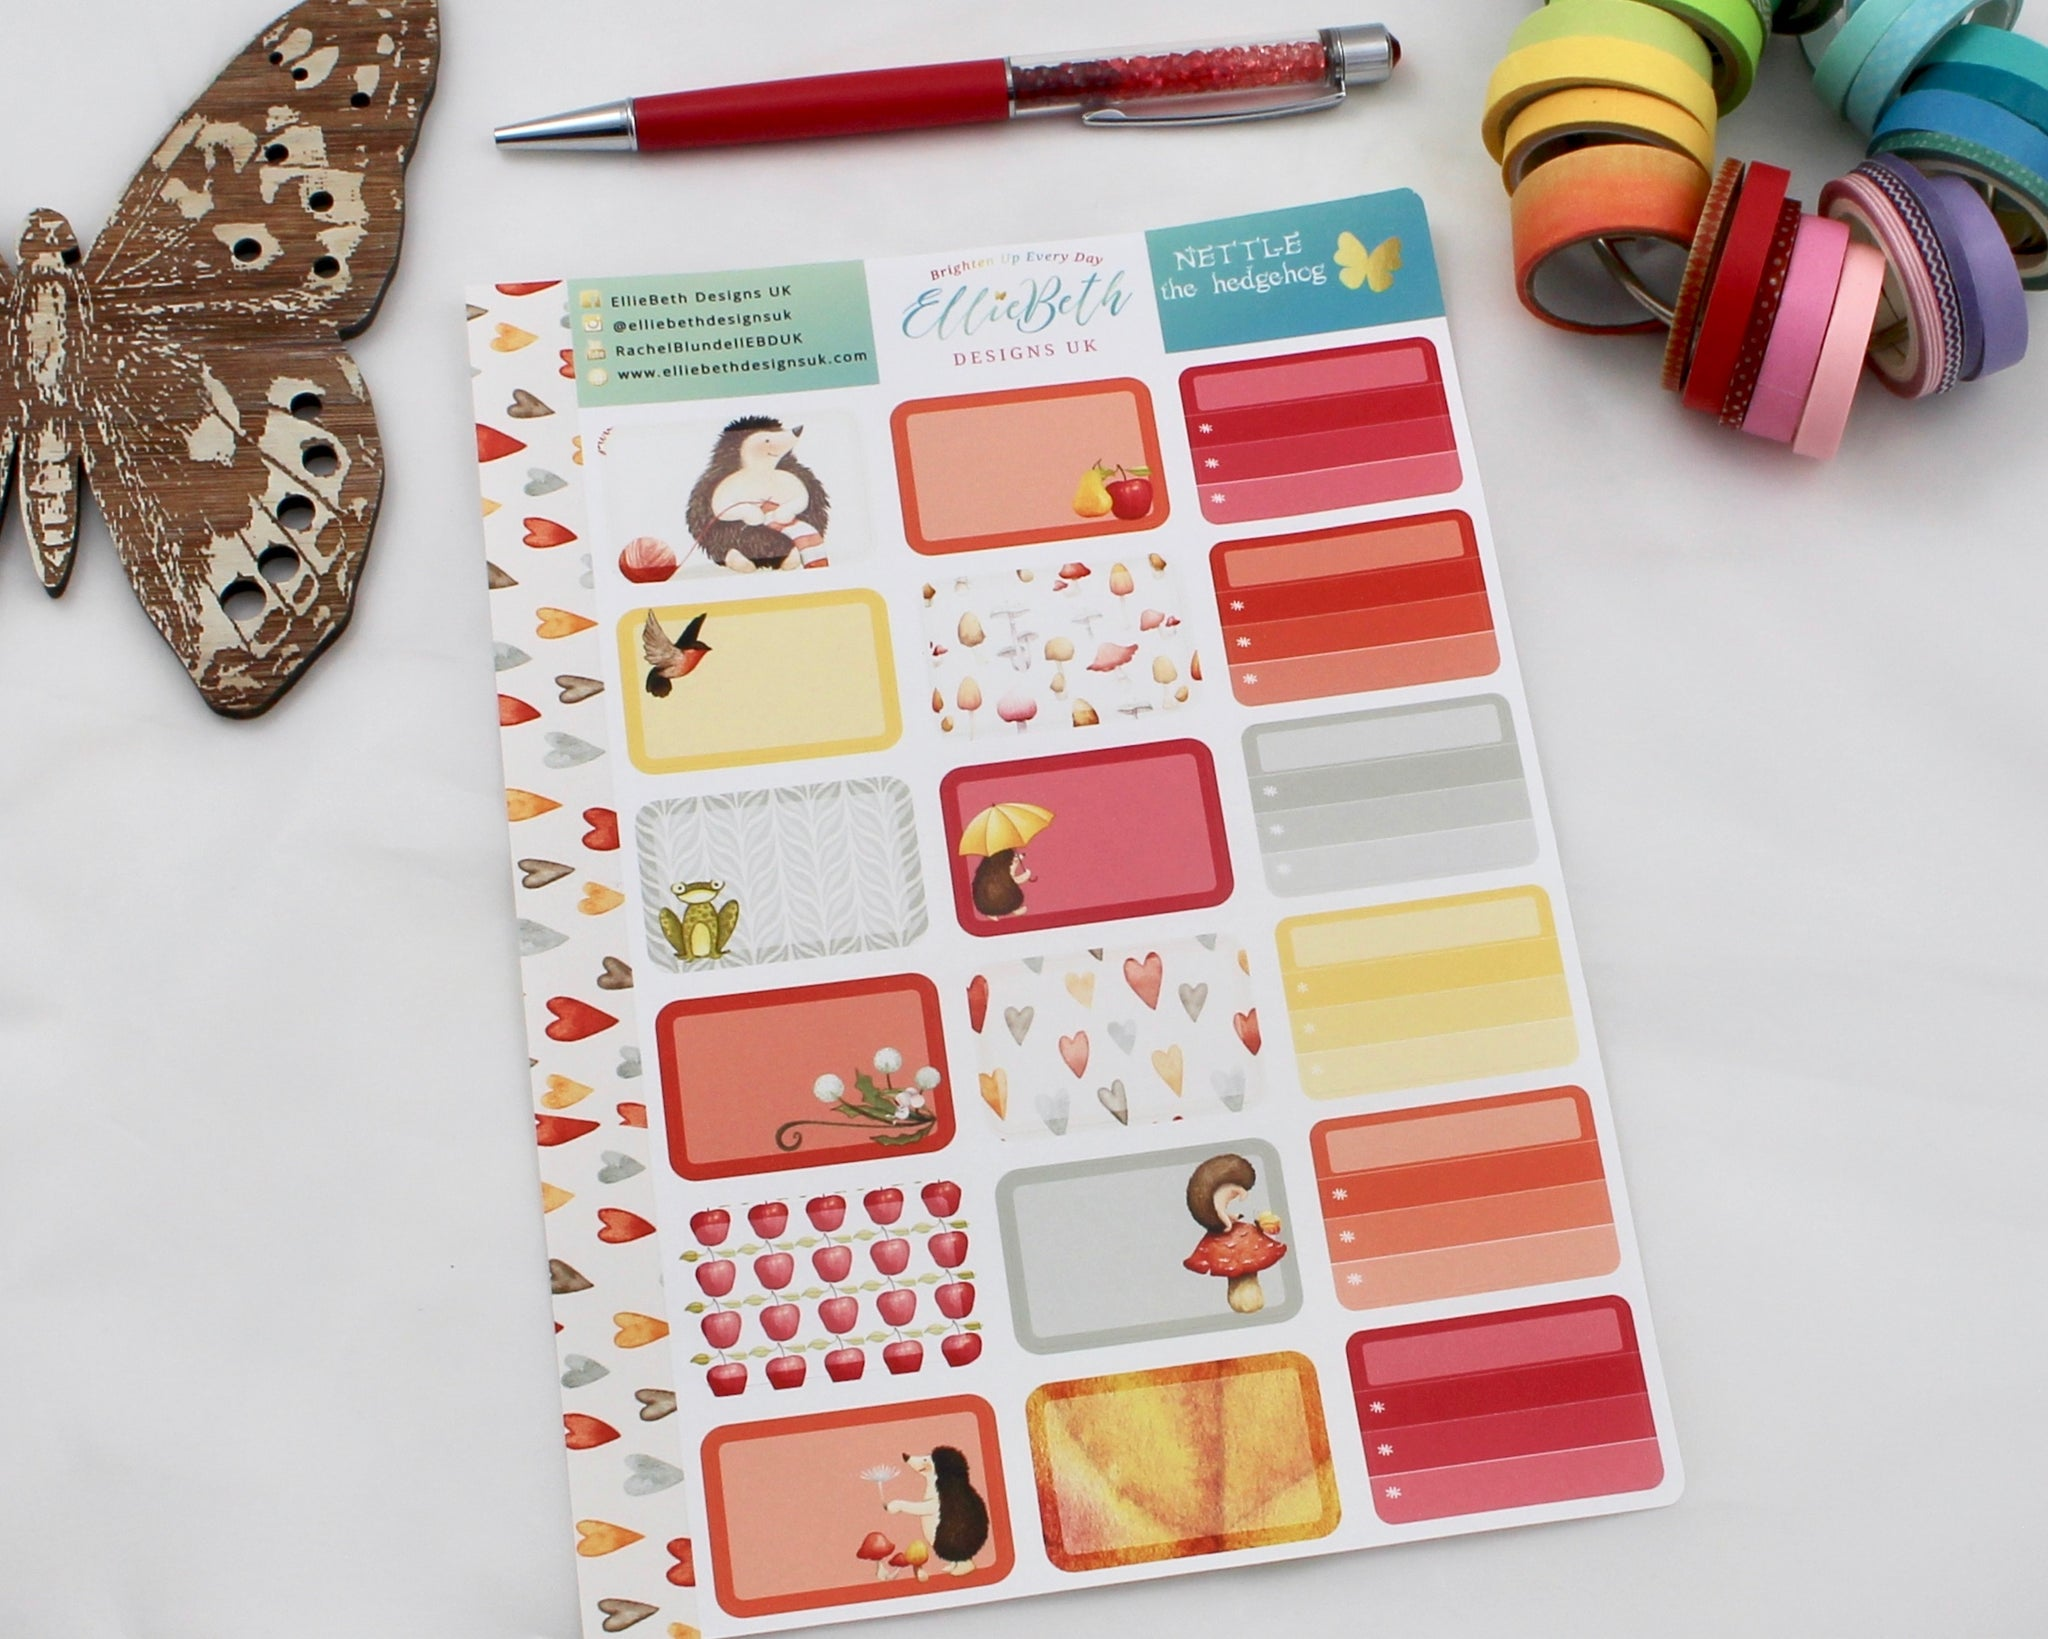 'Nettle the Hedgehog' - Half Boxes -  A5 binder ready planner stickers